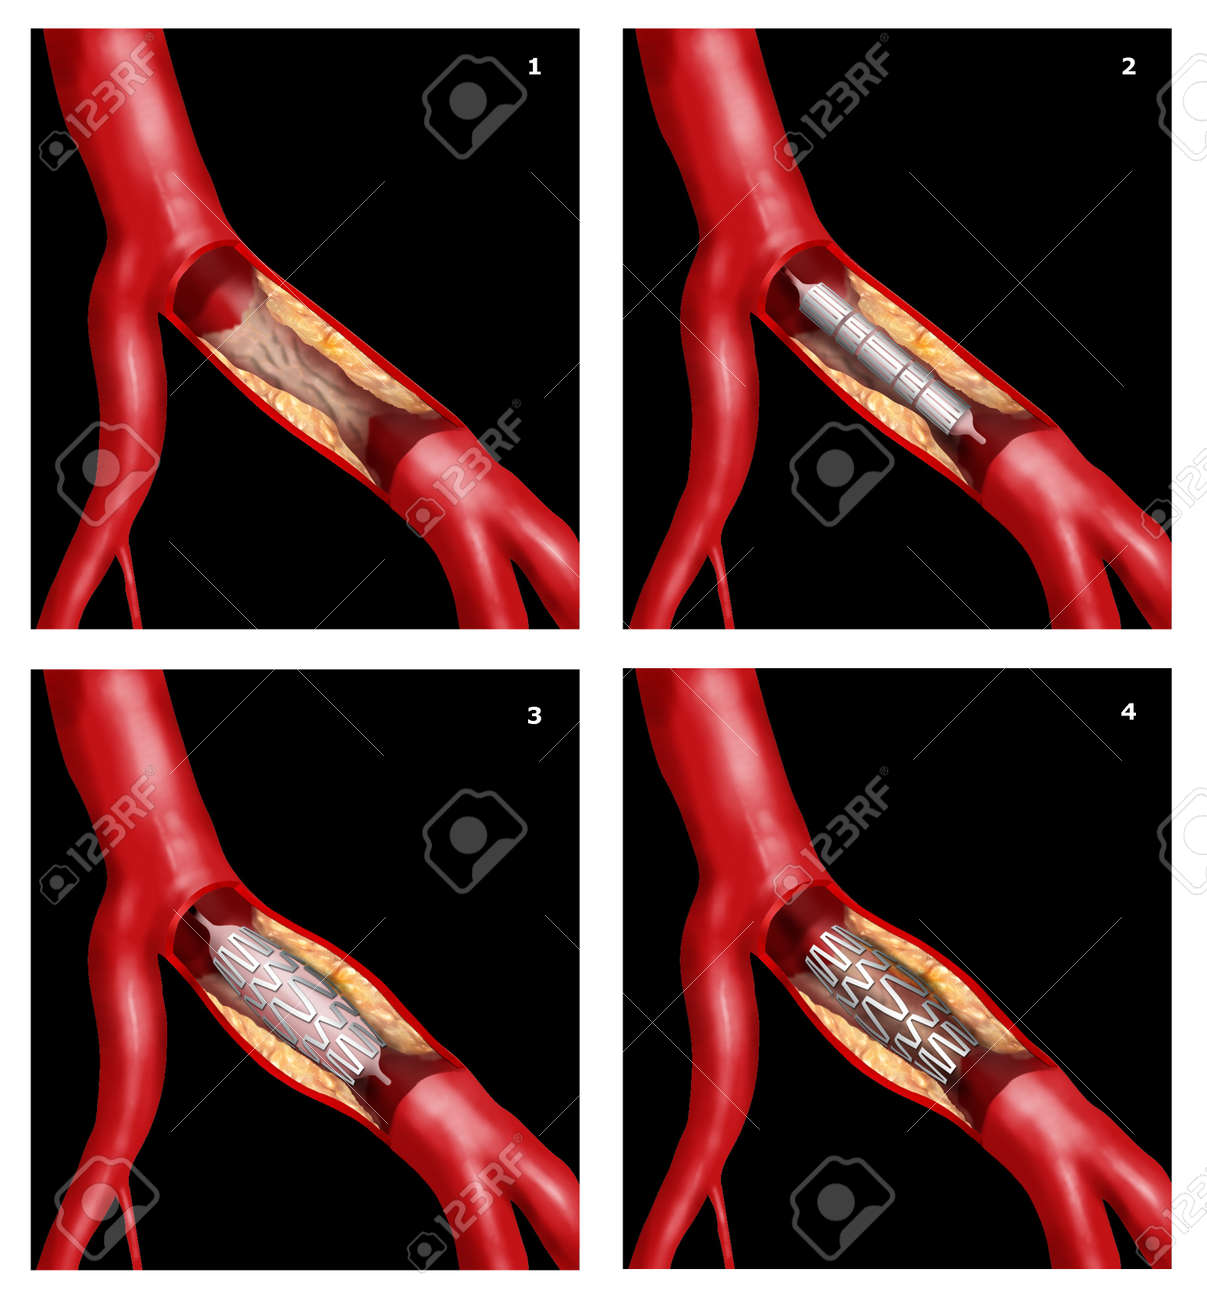 coronary stent surgical intervention in cardiothoracic technique Stock Photo - 16455971